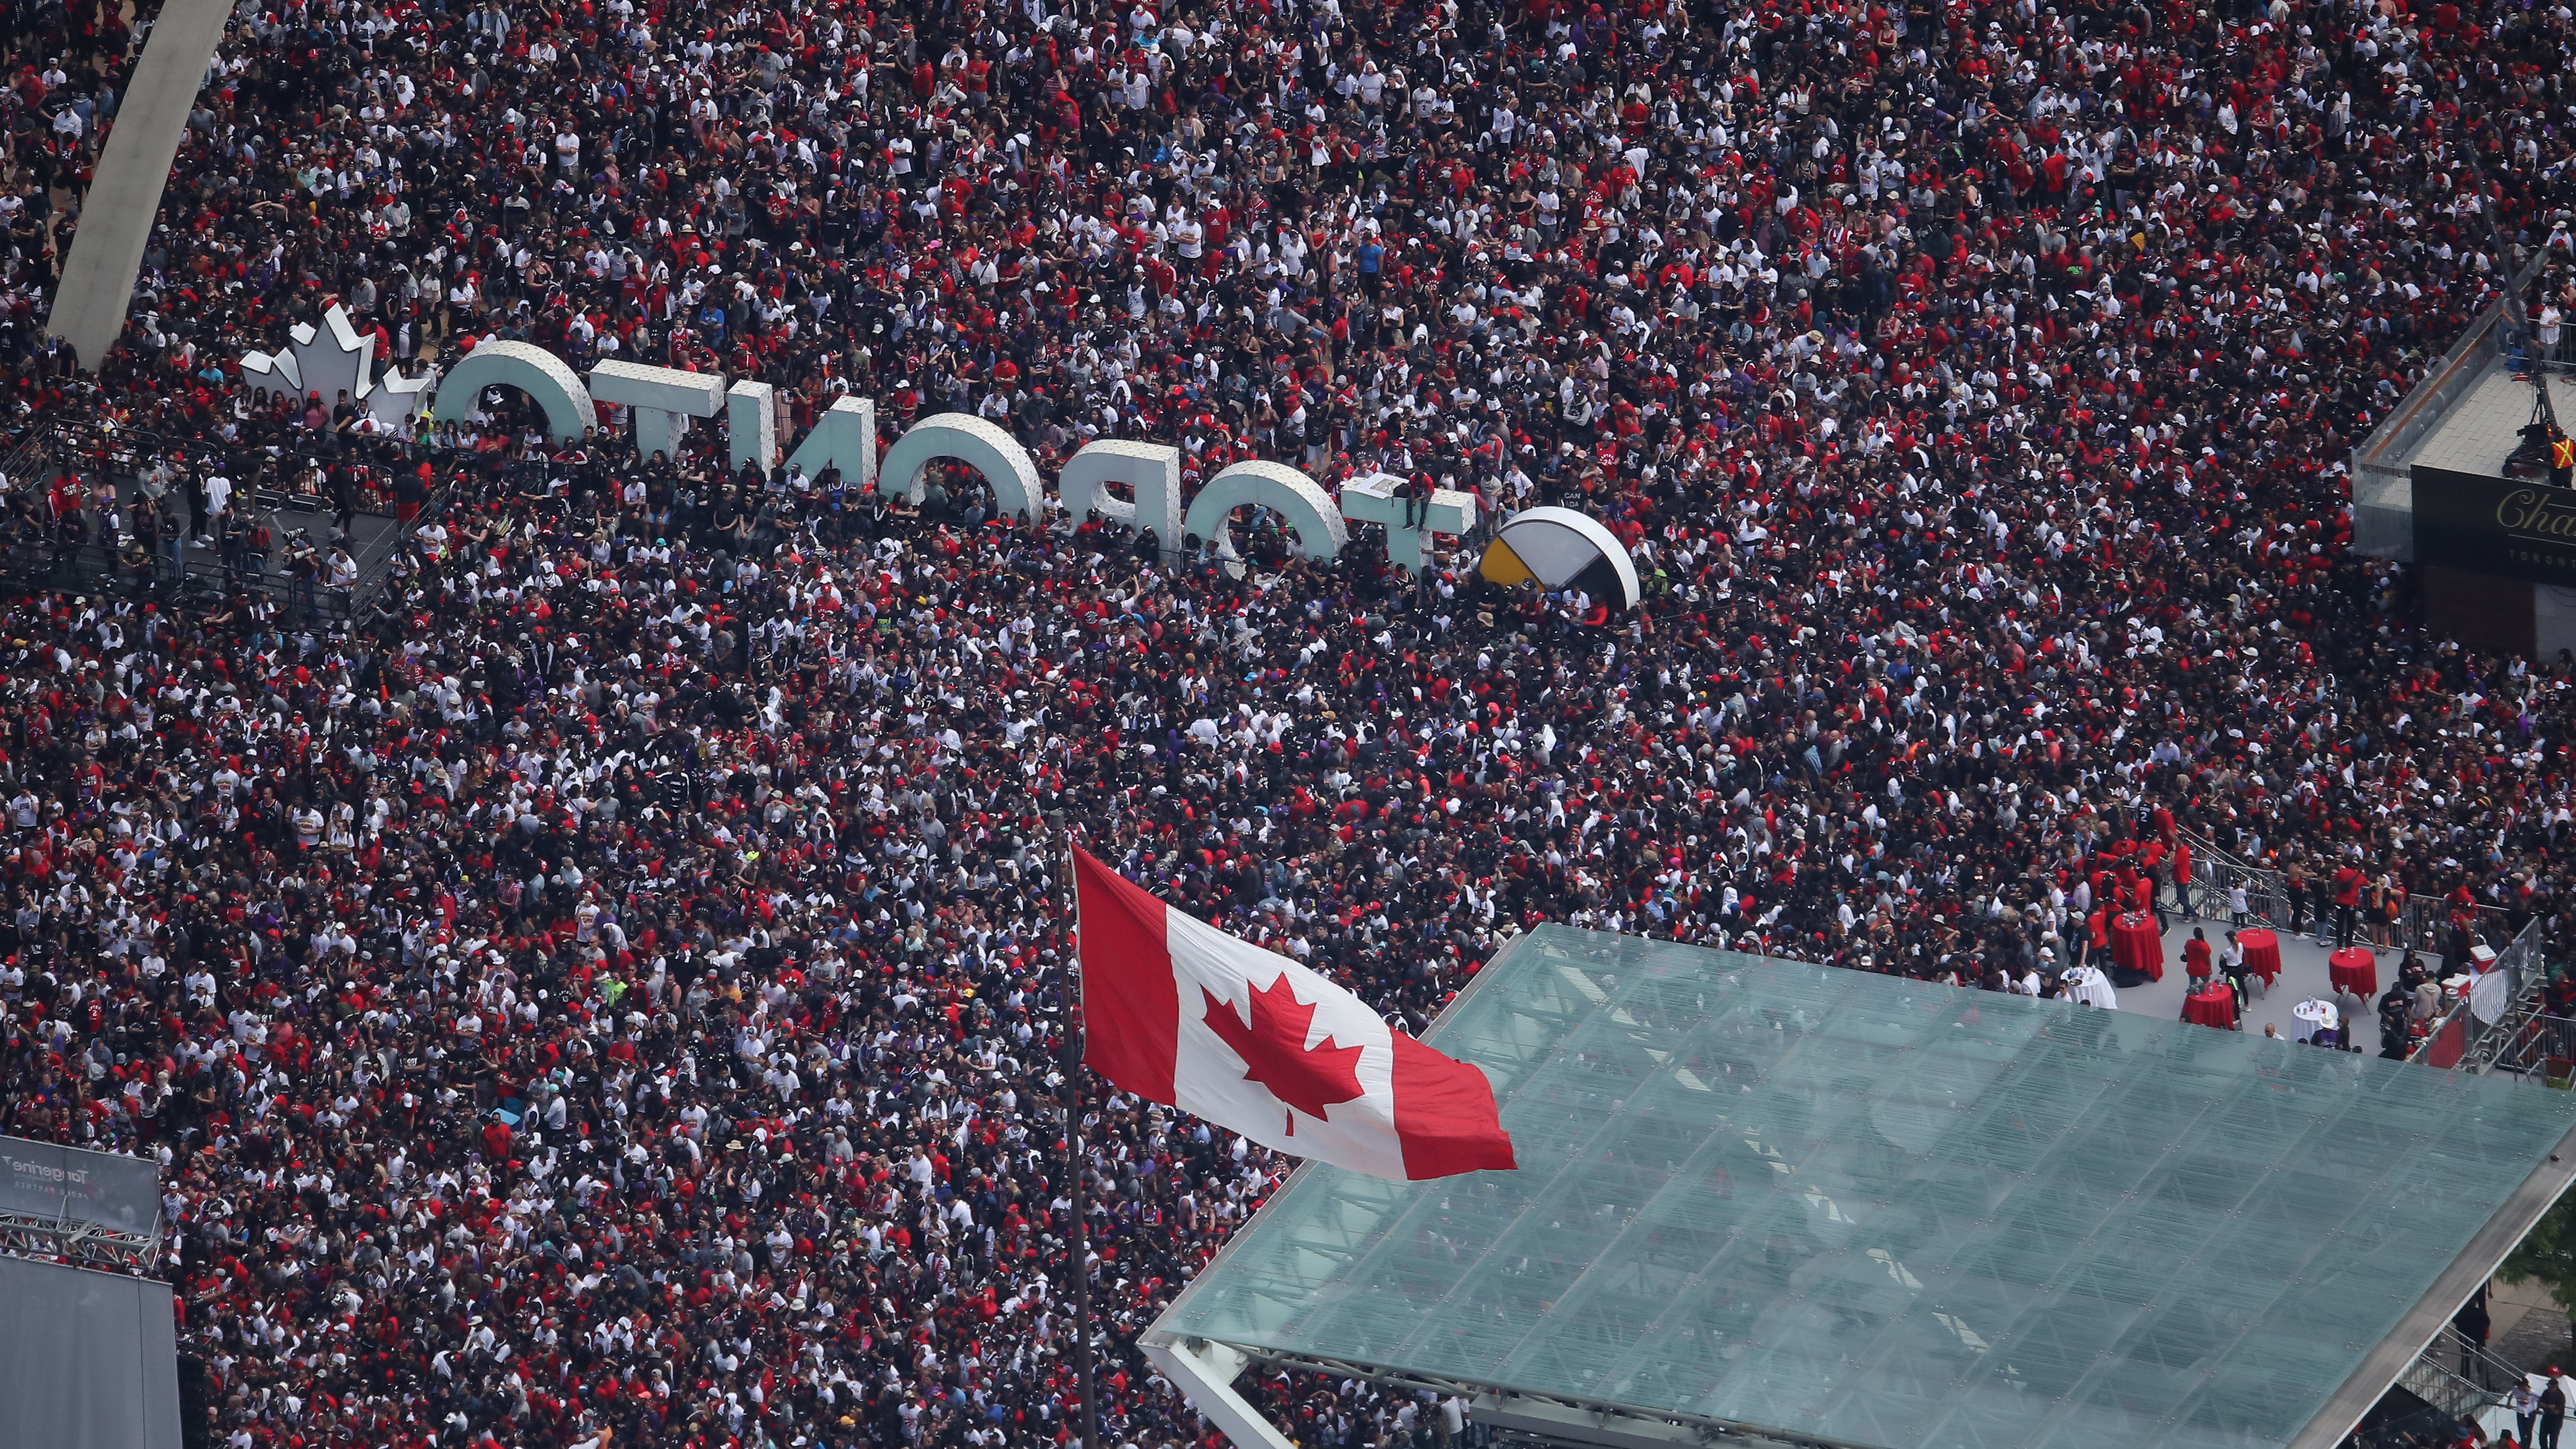 TORONTO, ON - JUNE 17: Fans gather at Nathan Phillips Square as they turn out for the Toronto Raptors NBA Championship Victory Parade after defeating the Golden State Warriors in the Finals on June 17, 2019 in Toronto, Canada. NOTE TO USER: User expressly acknowledges and agrees that, by downloading and or using this photograph, User is consenting to the terms and conditions of the Getty Images License Agreement. (Photo by Tom Szczerbowski/Getty Images)